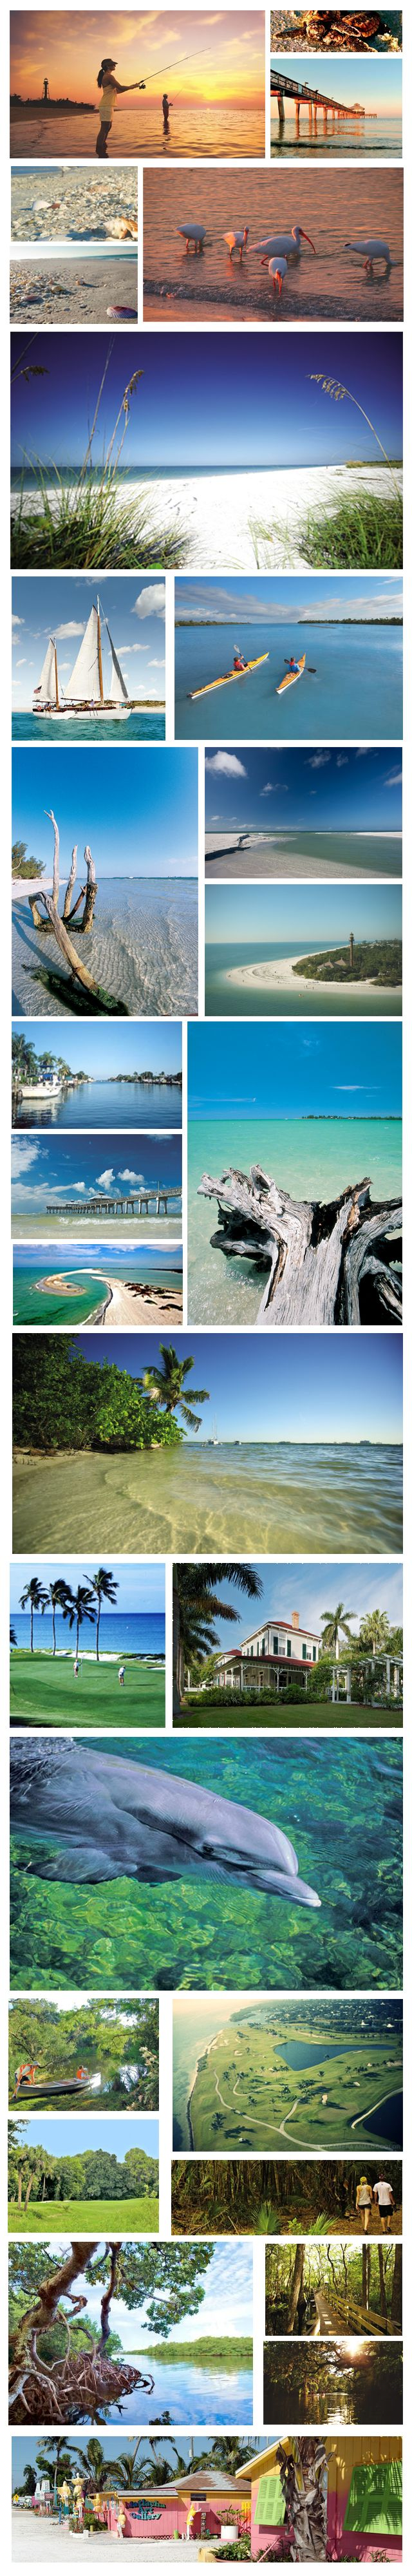 Away from the tourists...  The Beaches of Fort Myers and Sanibel